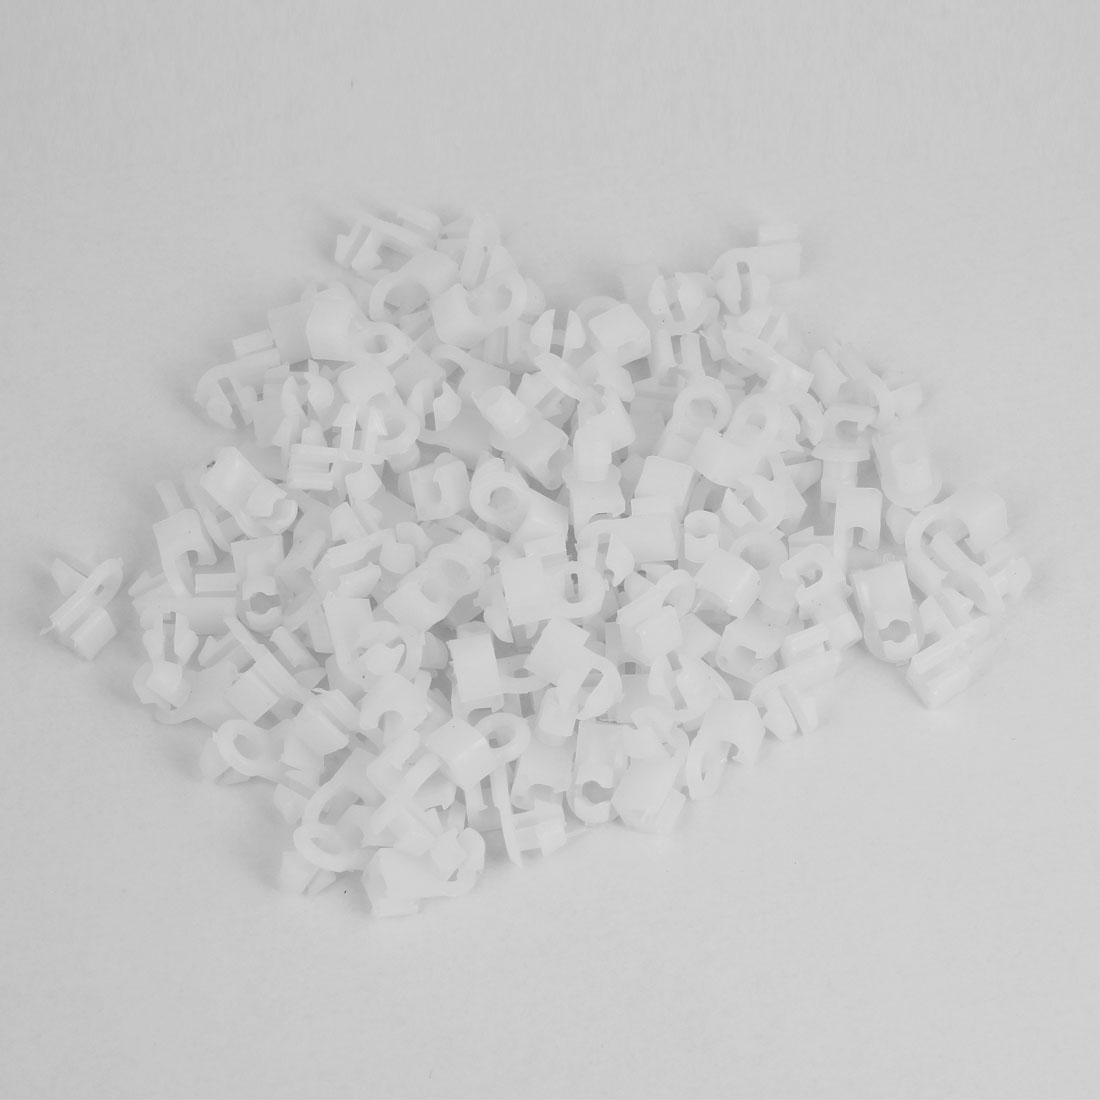 100pcs Car 7.5mm x 5mm Hole Plastic Push Rivet Fairing Panel Fixings Clips White